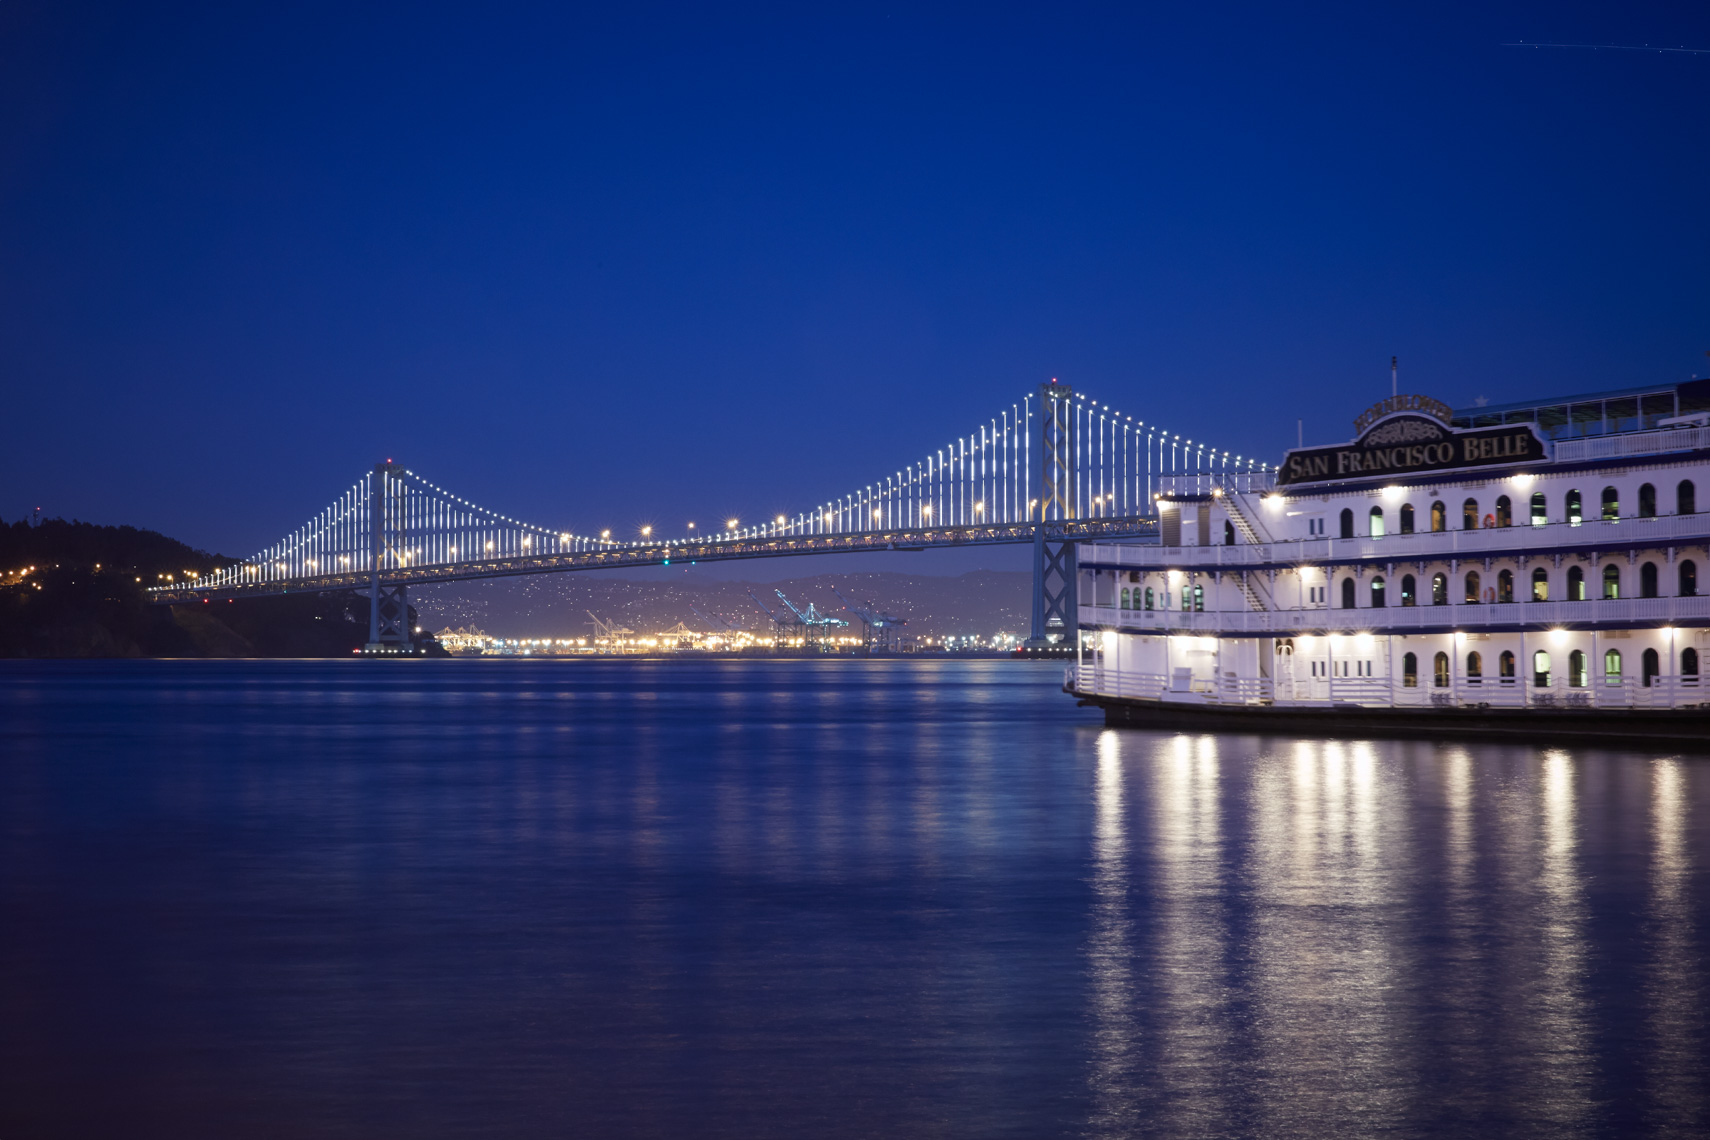 Oakland Bay Bridge viewed from San Francisco city water front at dusk with lights on bridge and ferry boat